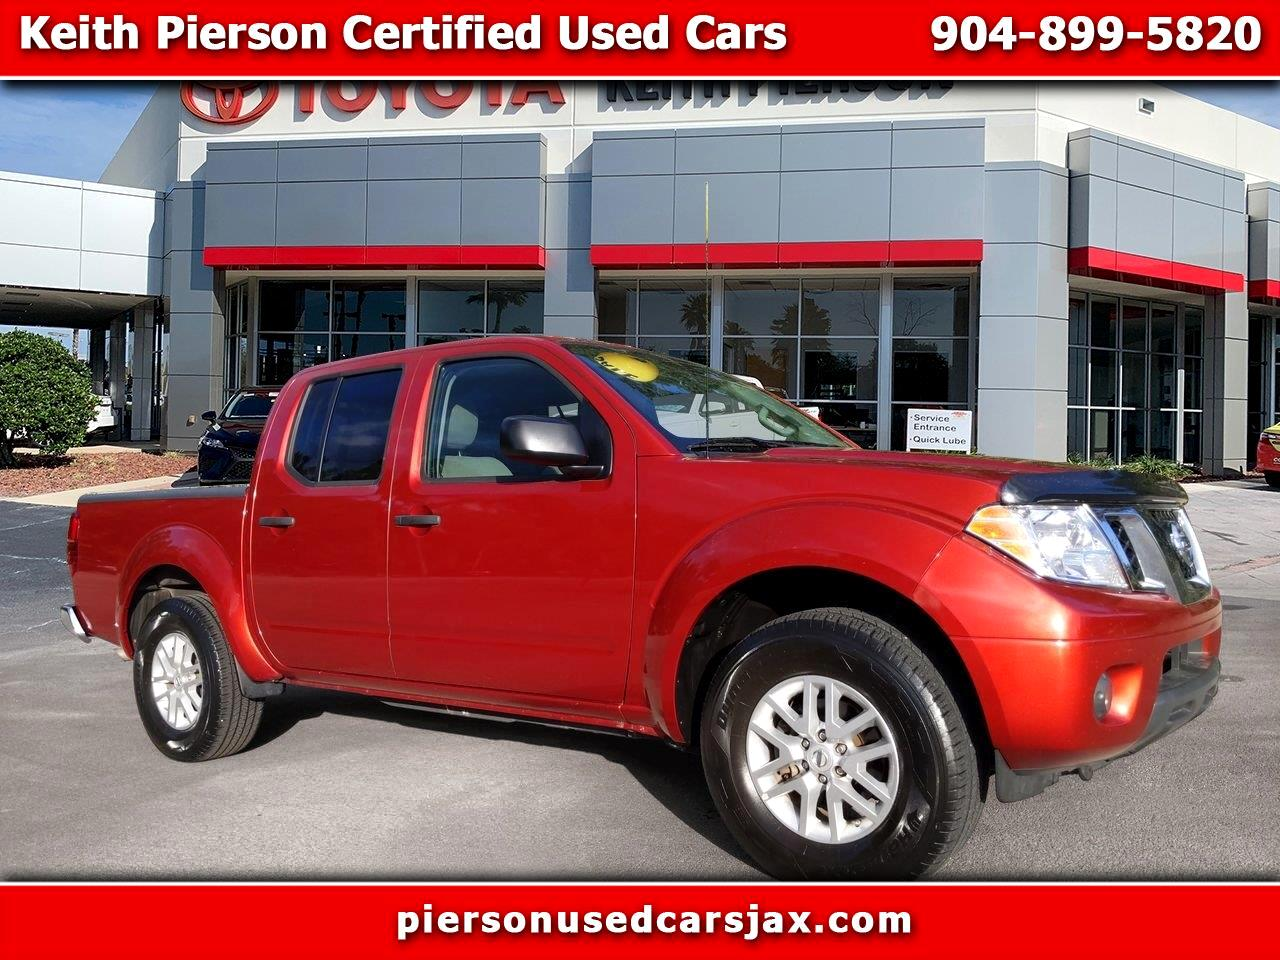 2017 Nissan Frontier Crew Cab 4x4 SV V6 Auto *Ltd Avail*